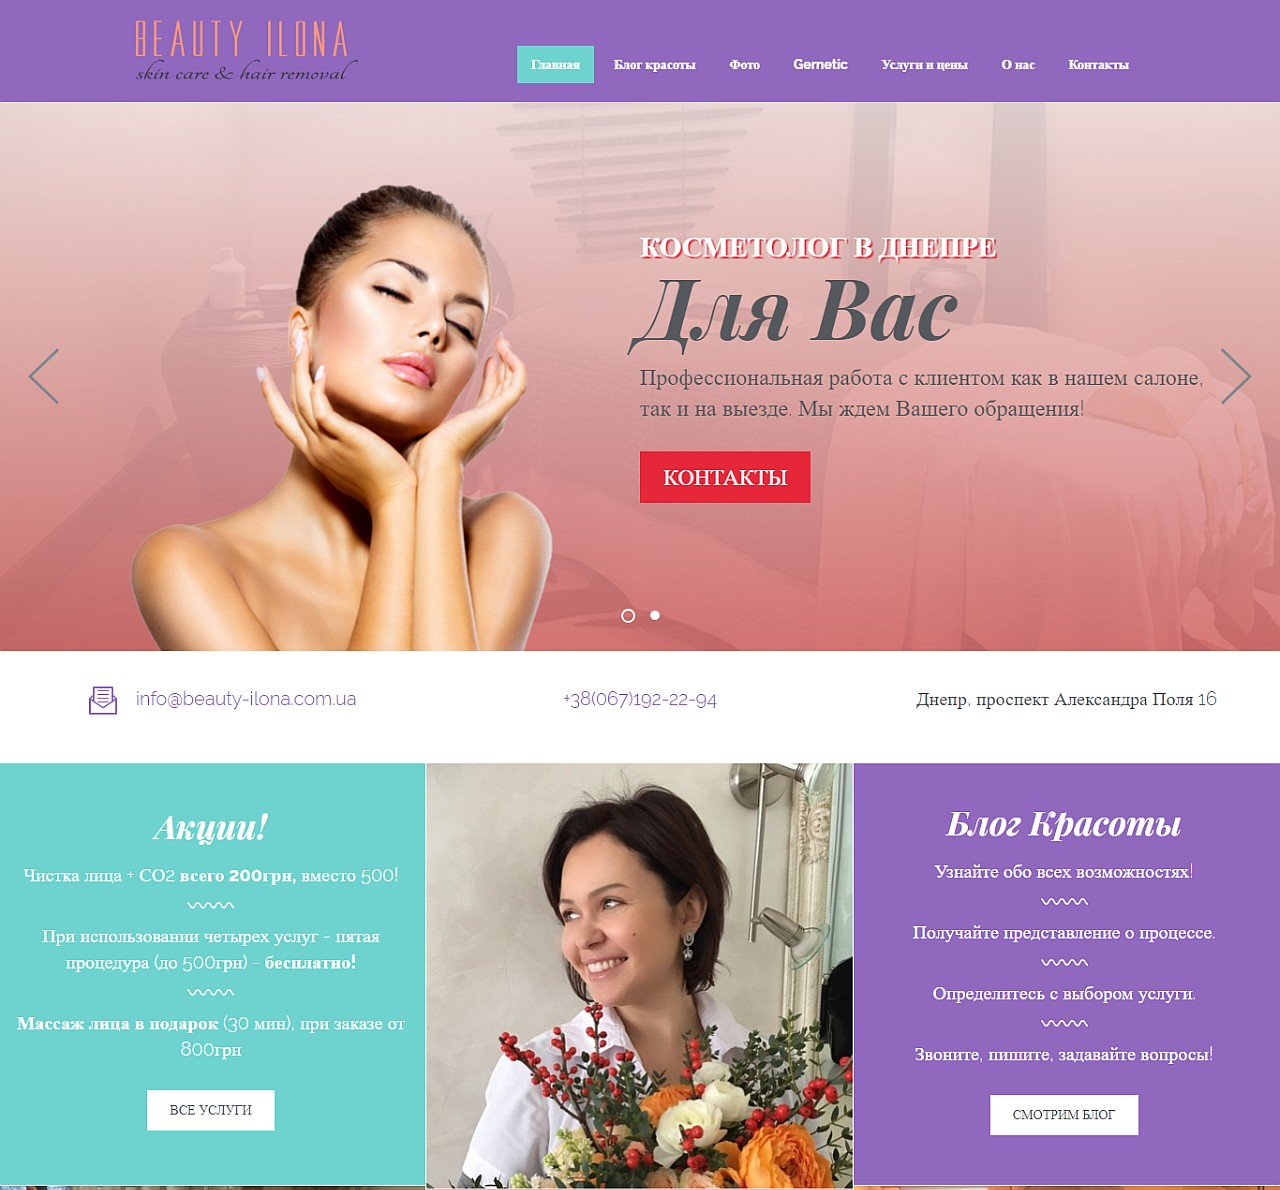 beauty-ilona.com.ua